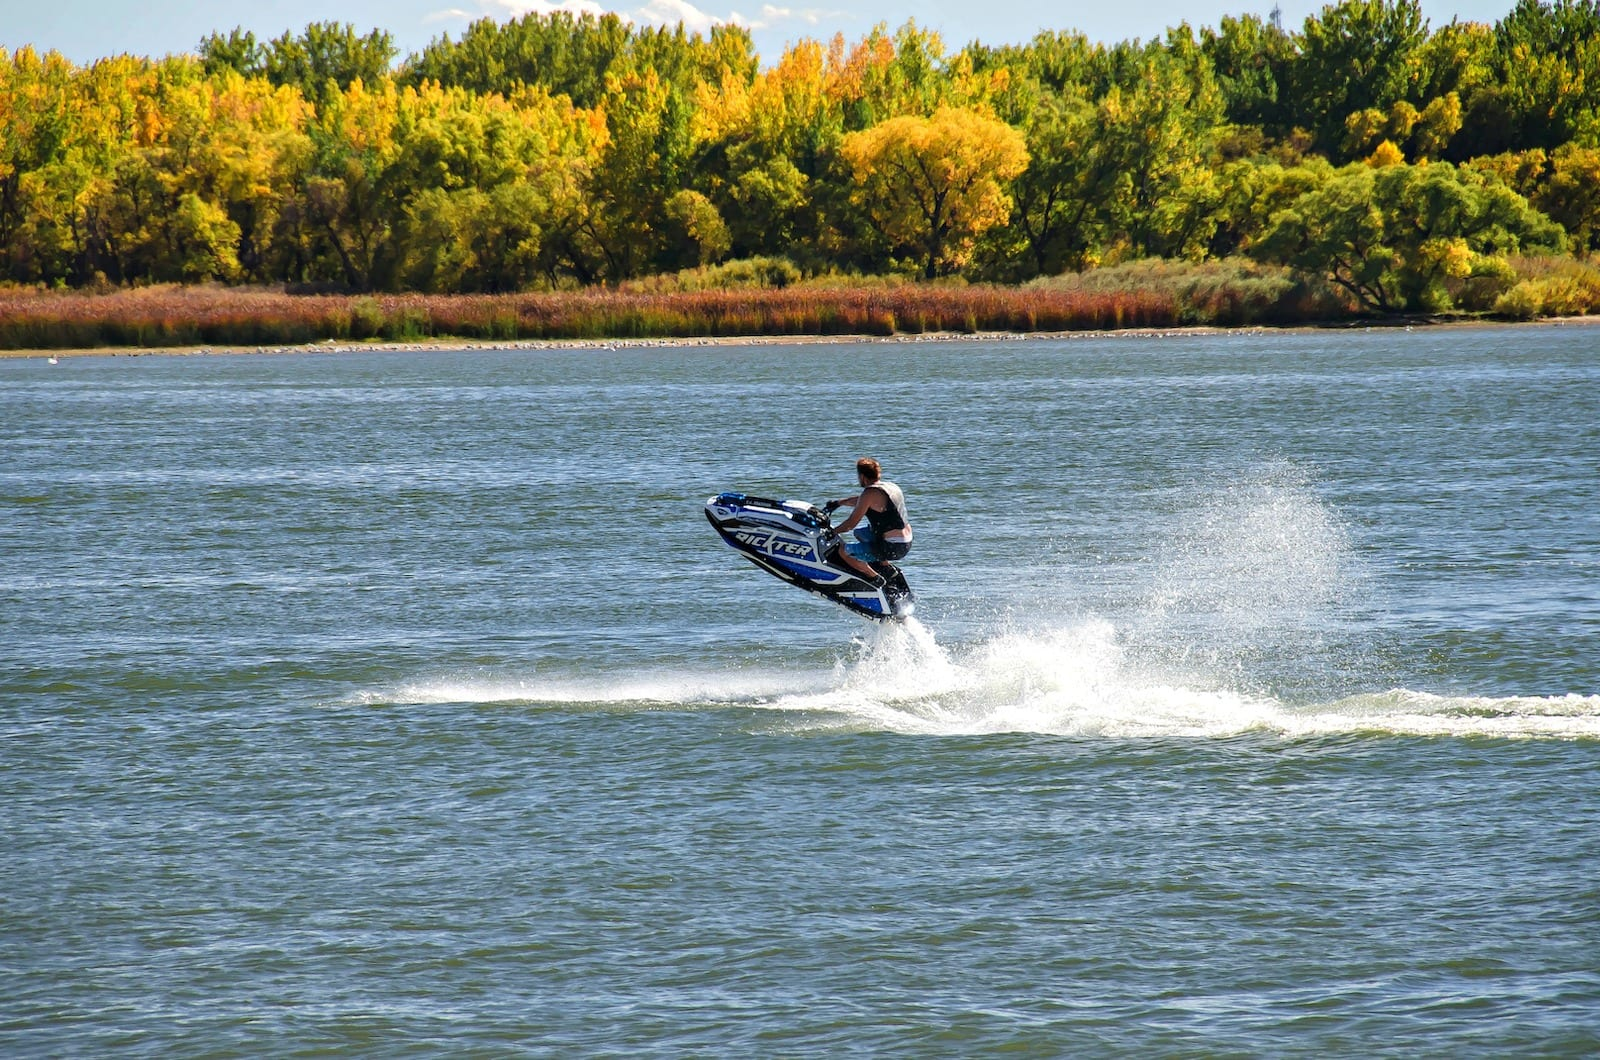 Jet skiing on Cherry Creek Reservoir, CO